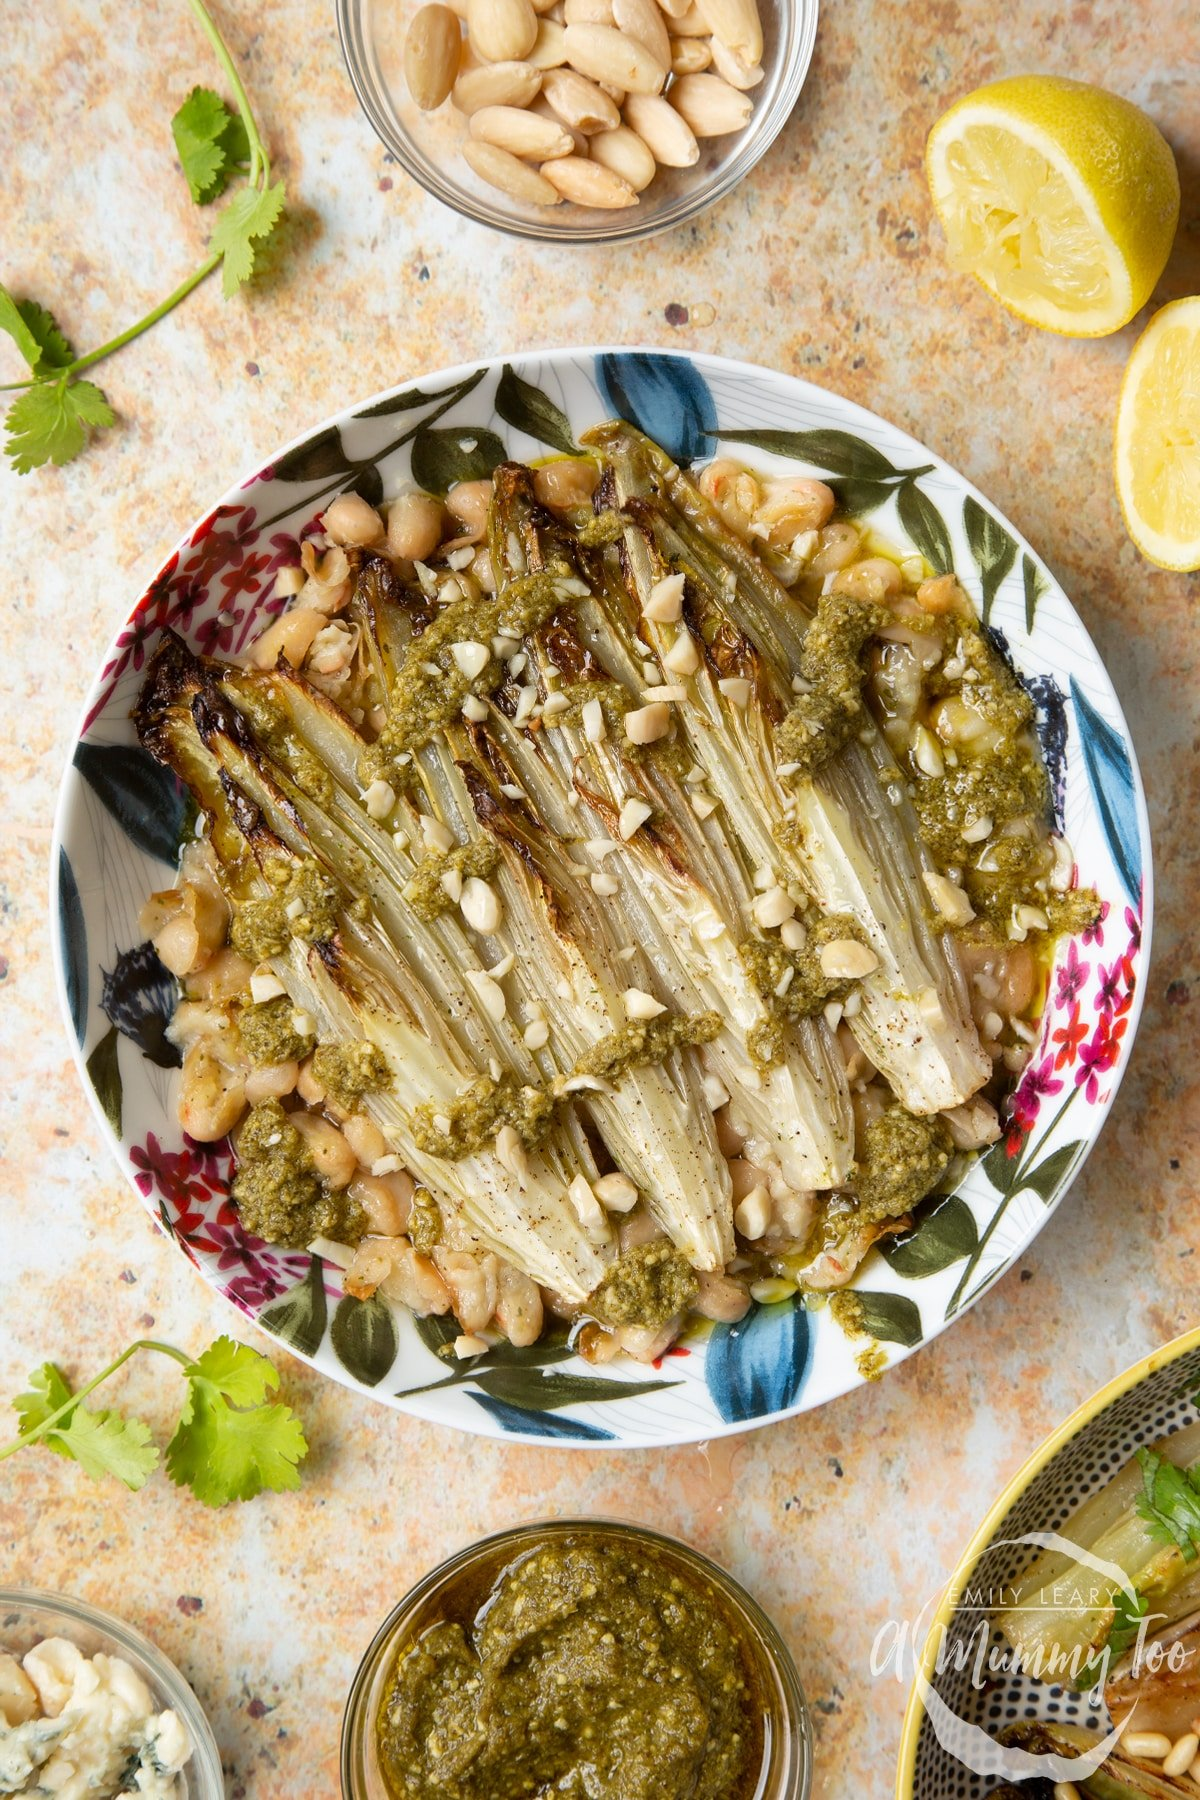 Braised chicory in a bowl with cannellini beans, pesto and chopped almonds.